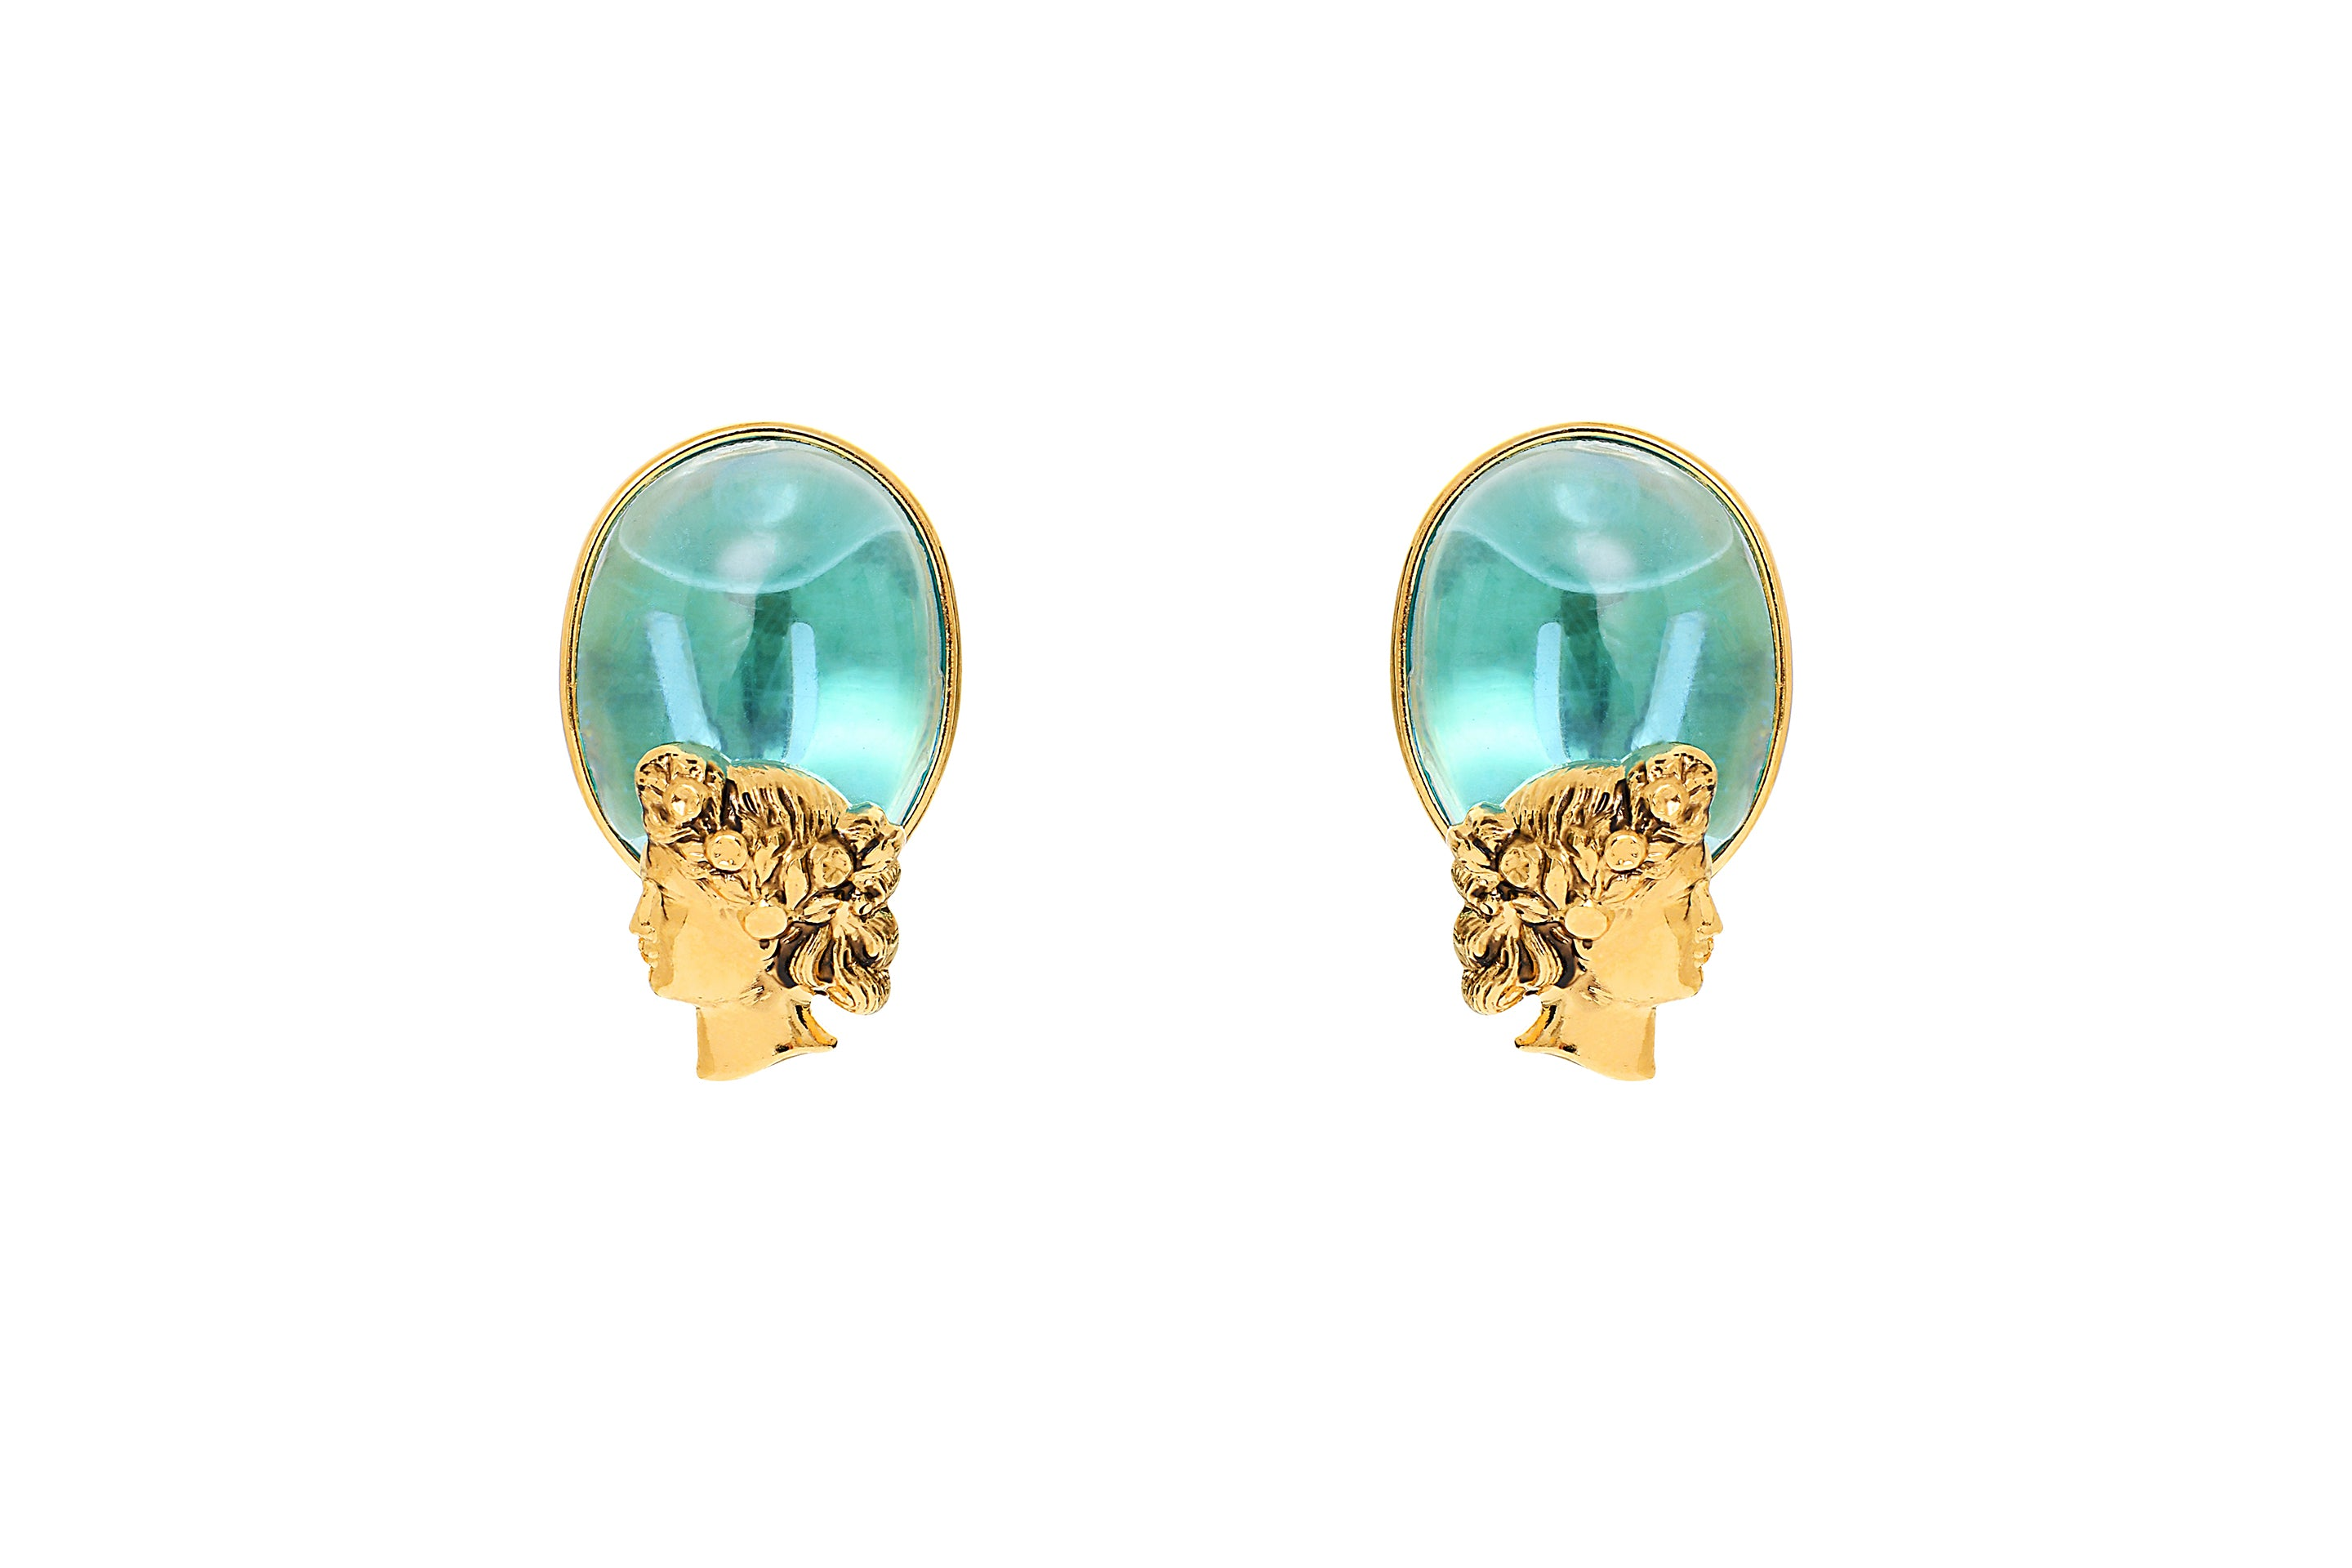 Back to Rome Cameo Clip Earrings with Cameo